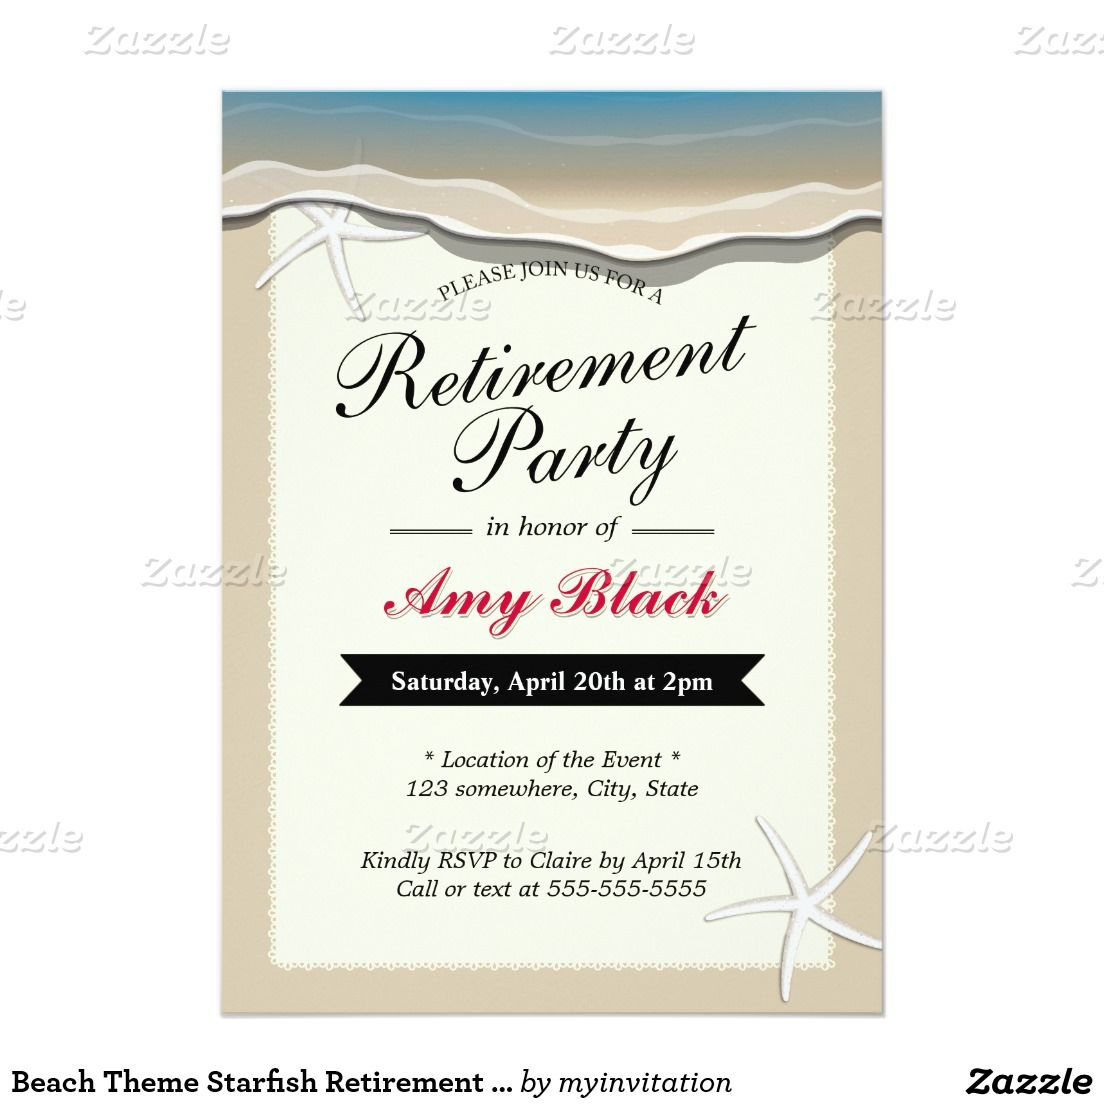 Beach Theme Starfish Retirement Party Invitation  Retirement